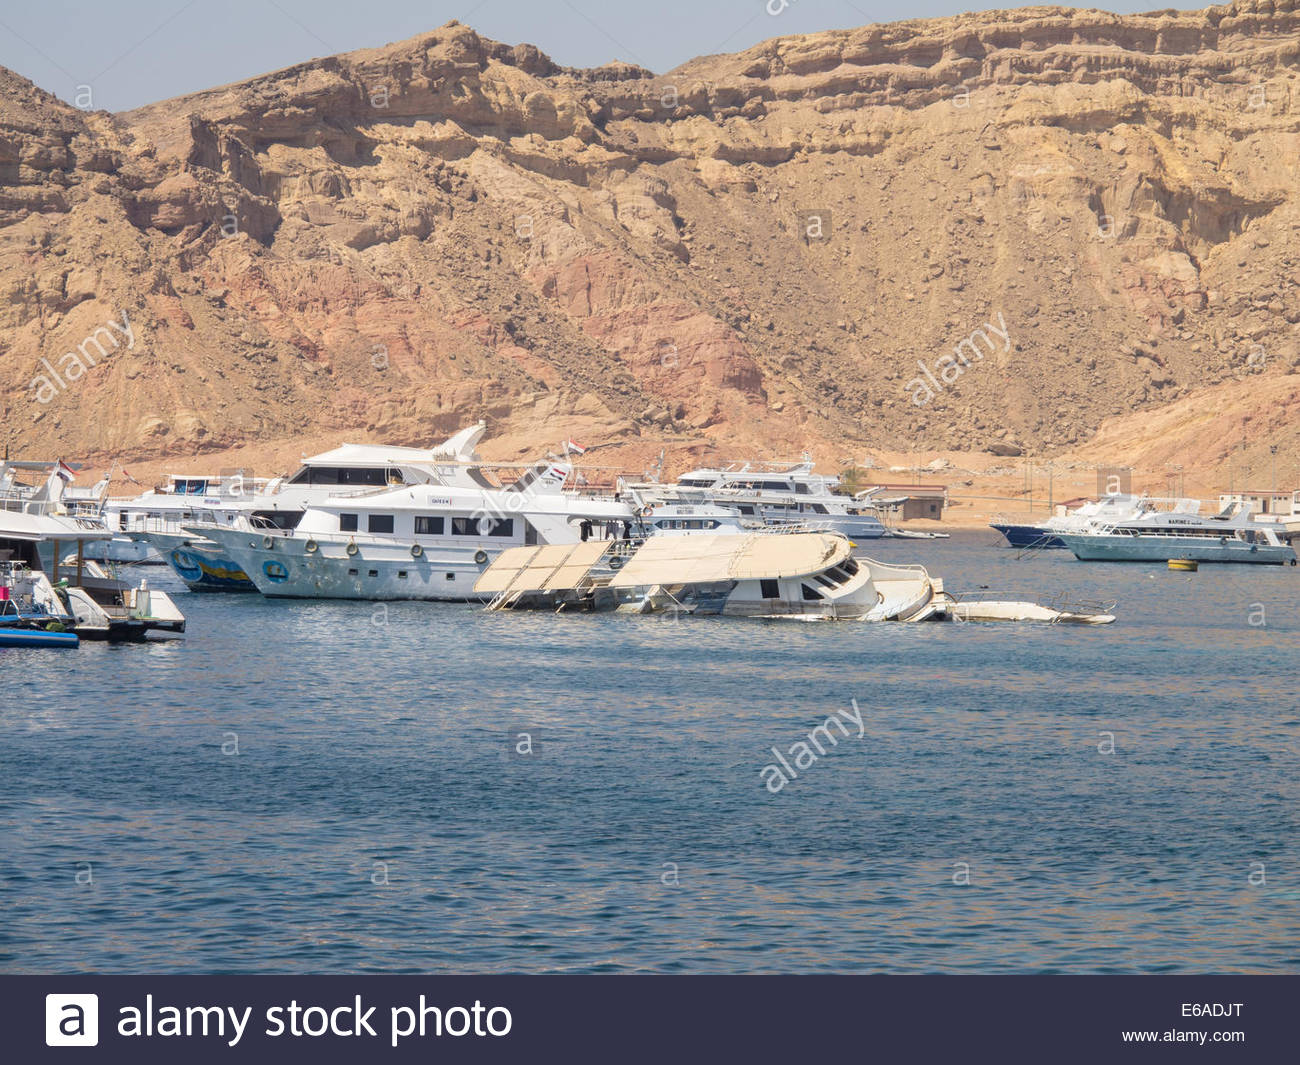 Yacht wreck in the harbour at Ras Mohammed, Egypt - Stock Image